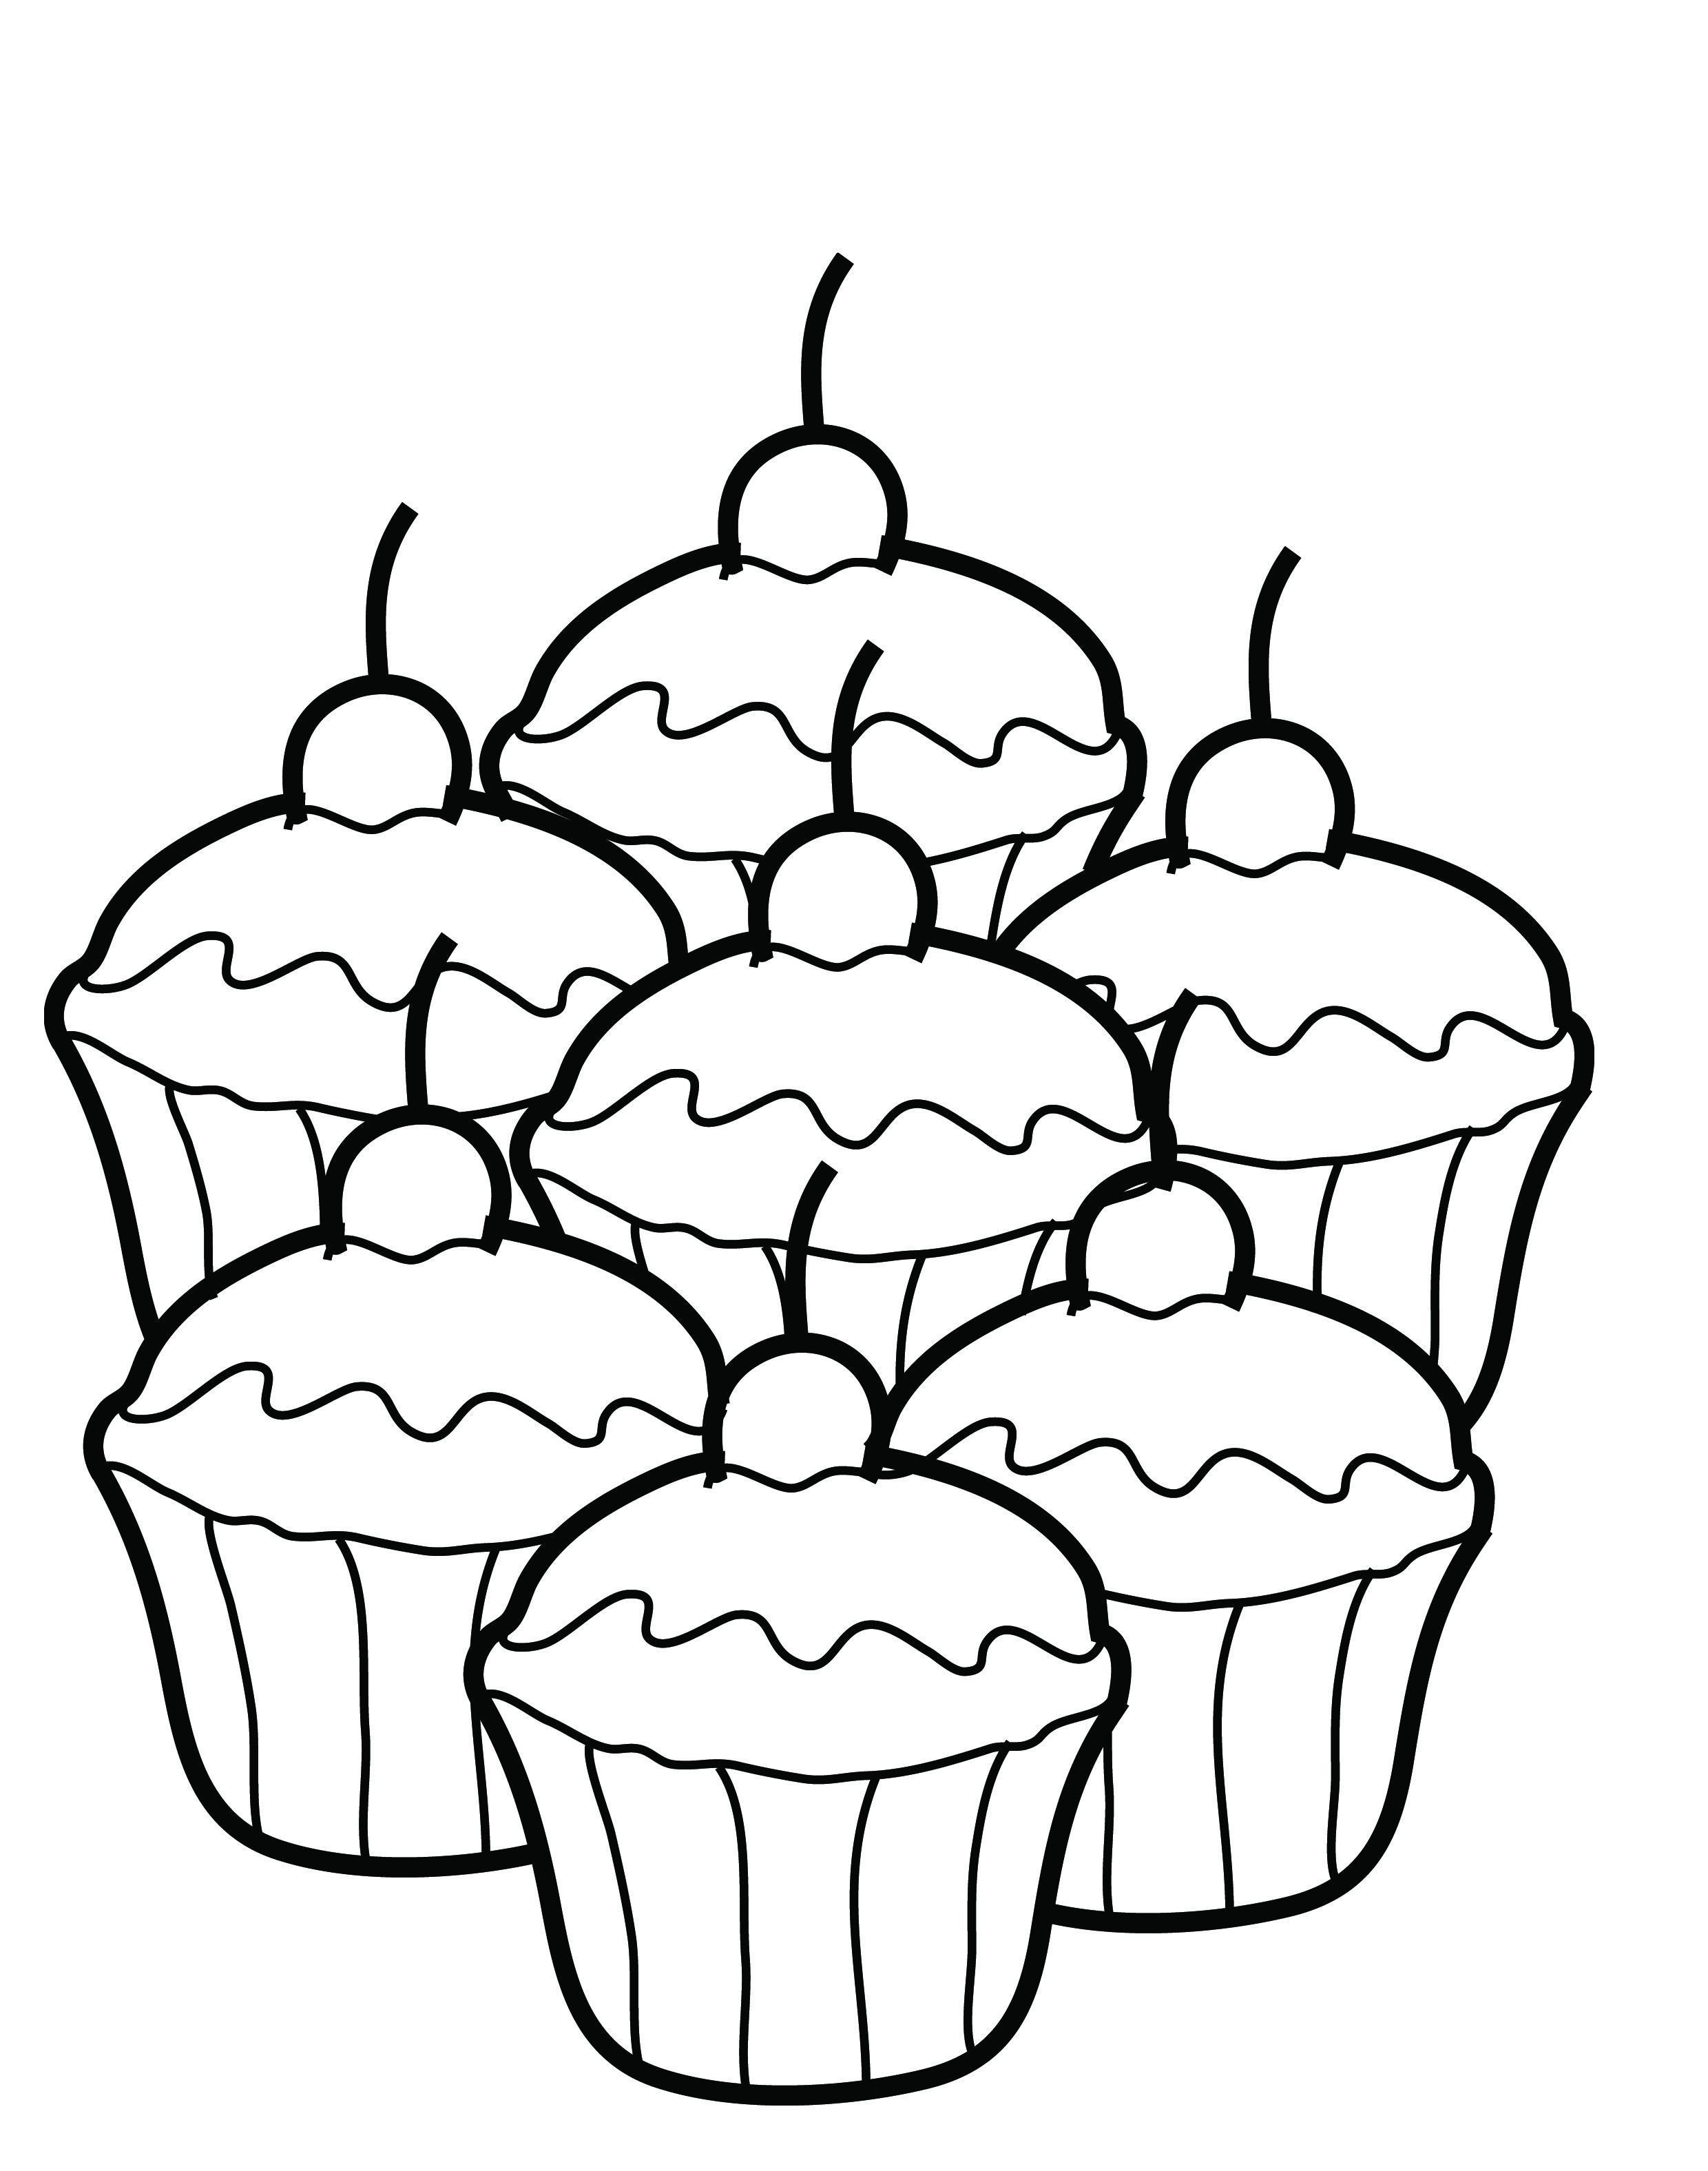 cupcake coloring pages for kids - Pictures For Kids To Color